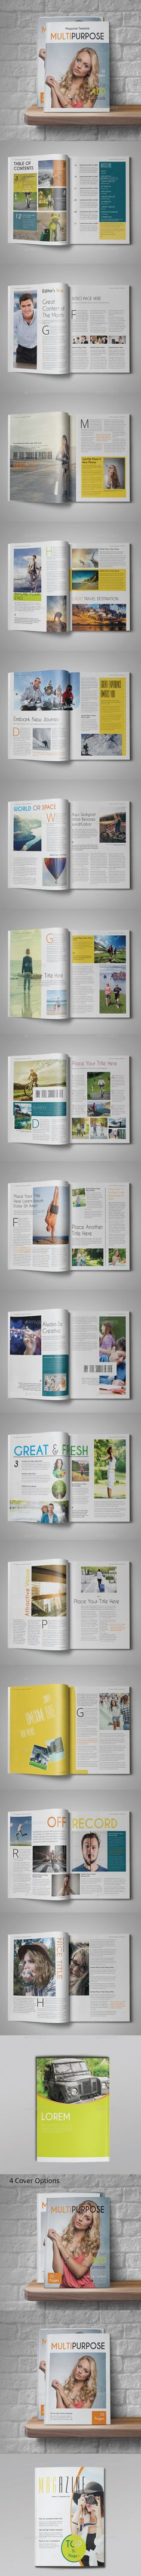 Multipurpose Magazine Template — InDesign INDD #magazine #professional • Available here → https://graphicriver.net/item/multipurpose-magazine-template/12729982?ref=pxcr